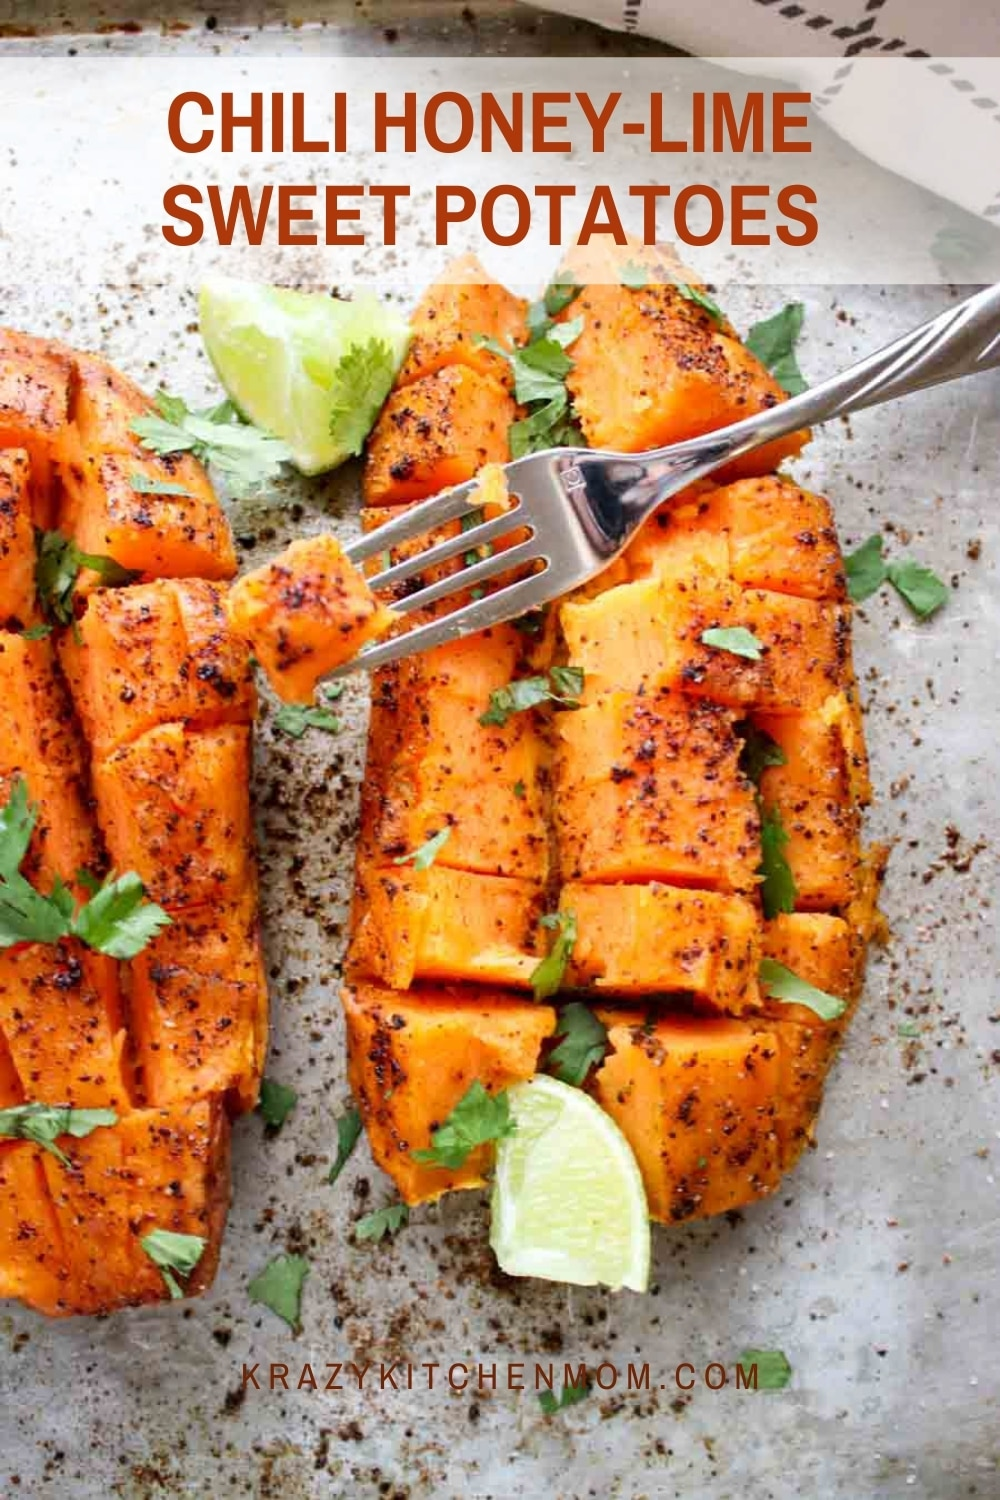 Sweet, spicy, savory sweet potatoes are slow-roasted creating a mouth-watering cartelized flavor. Serve them with chicken, steak, or as a meal by themselves. via @krazykitchenmom